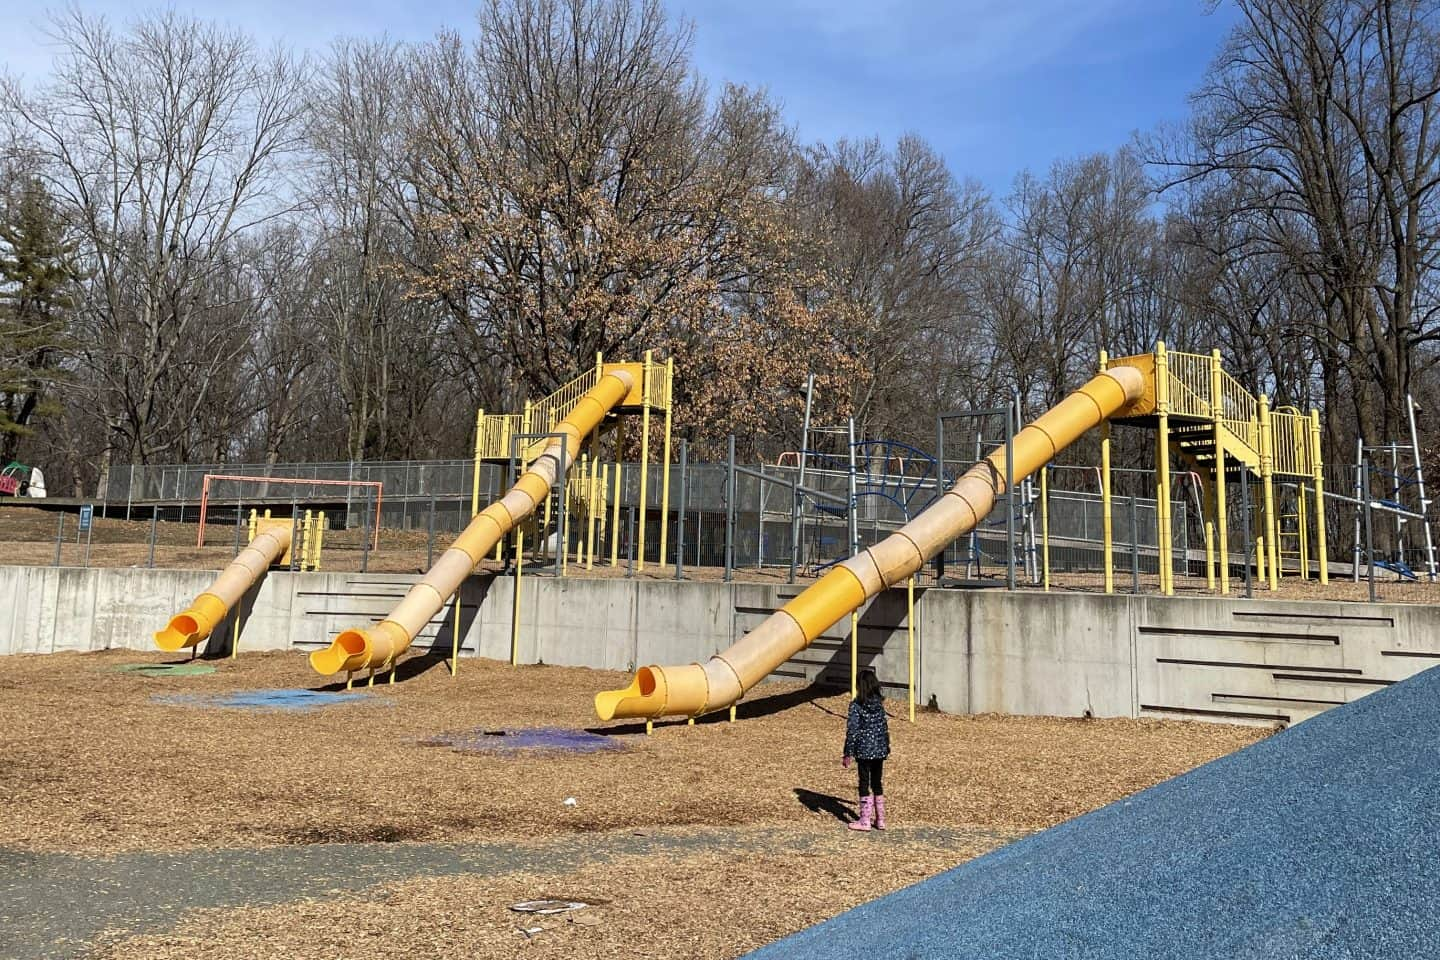 Best Playgrounds in Maryland Wheaton